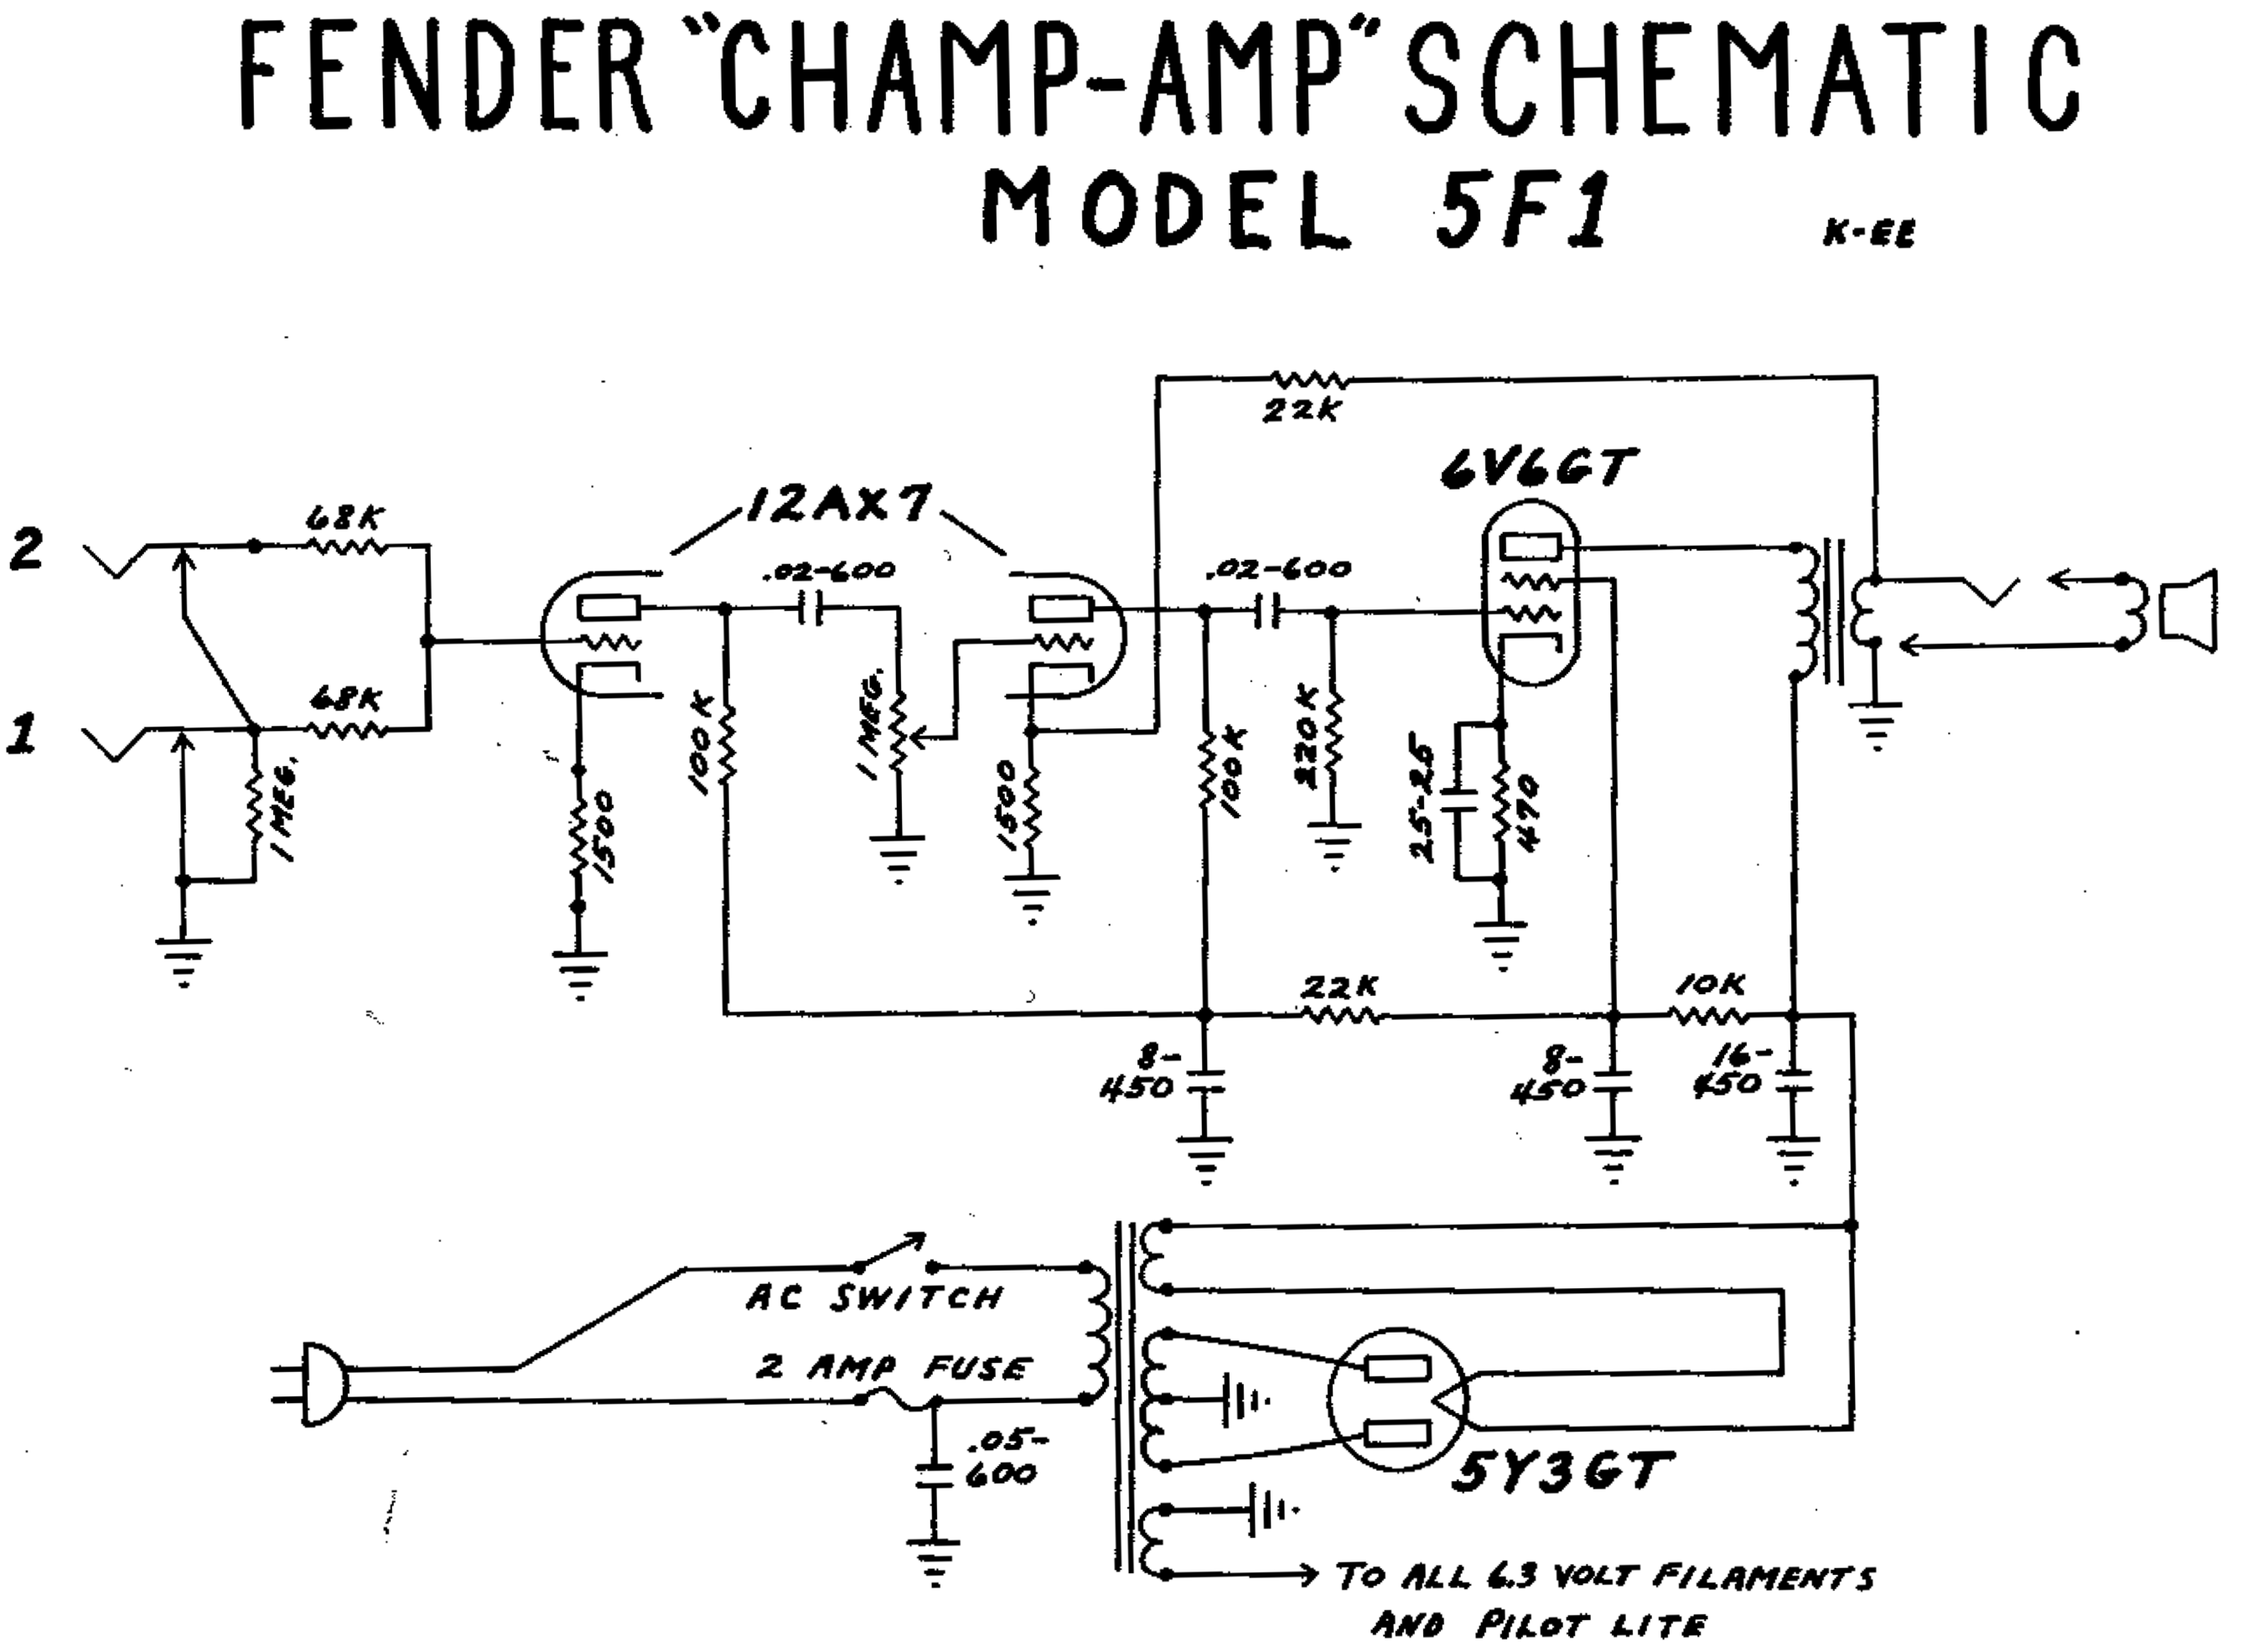 Pin by ZoukiTheBorder on DIY ELECTRONICS | Valve amplifier ... Fender Champion Schematic on